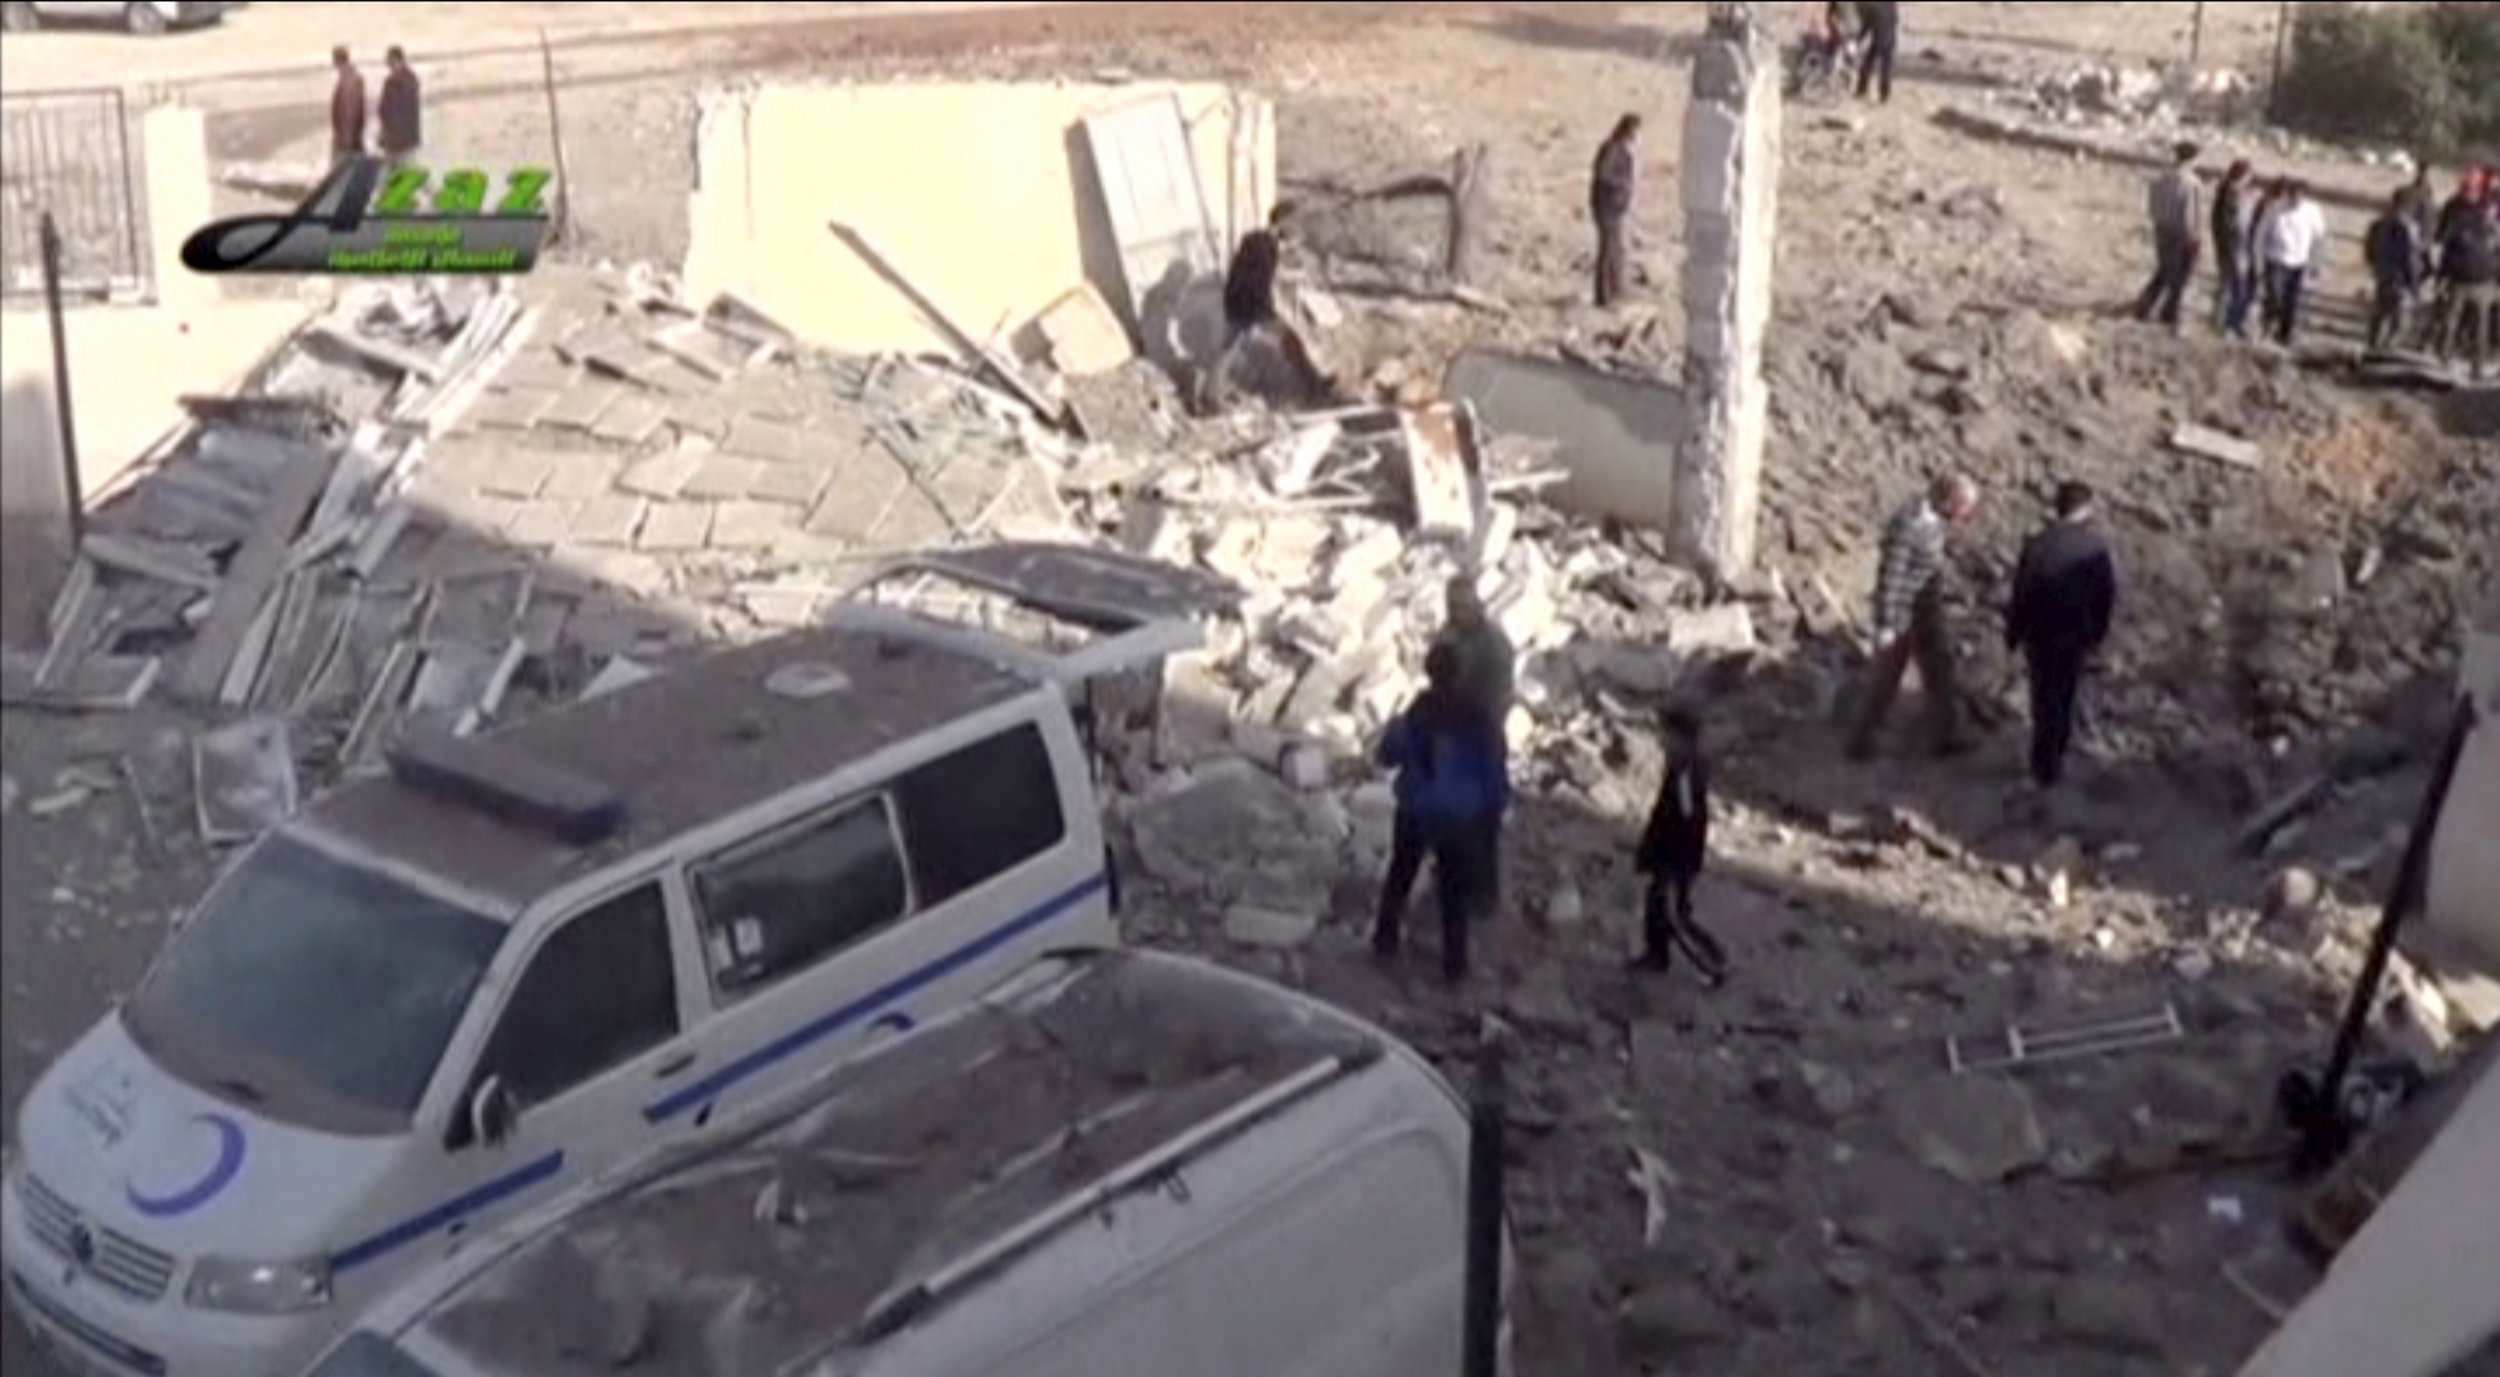 Syrian civilians stand in the rubble of a ruined building